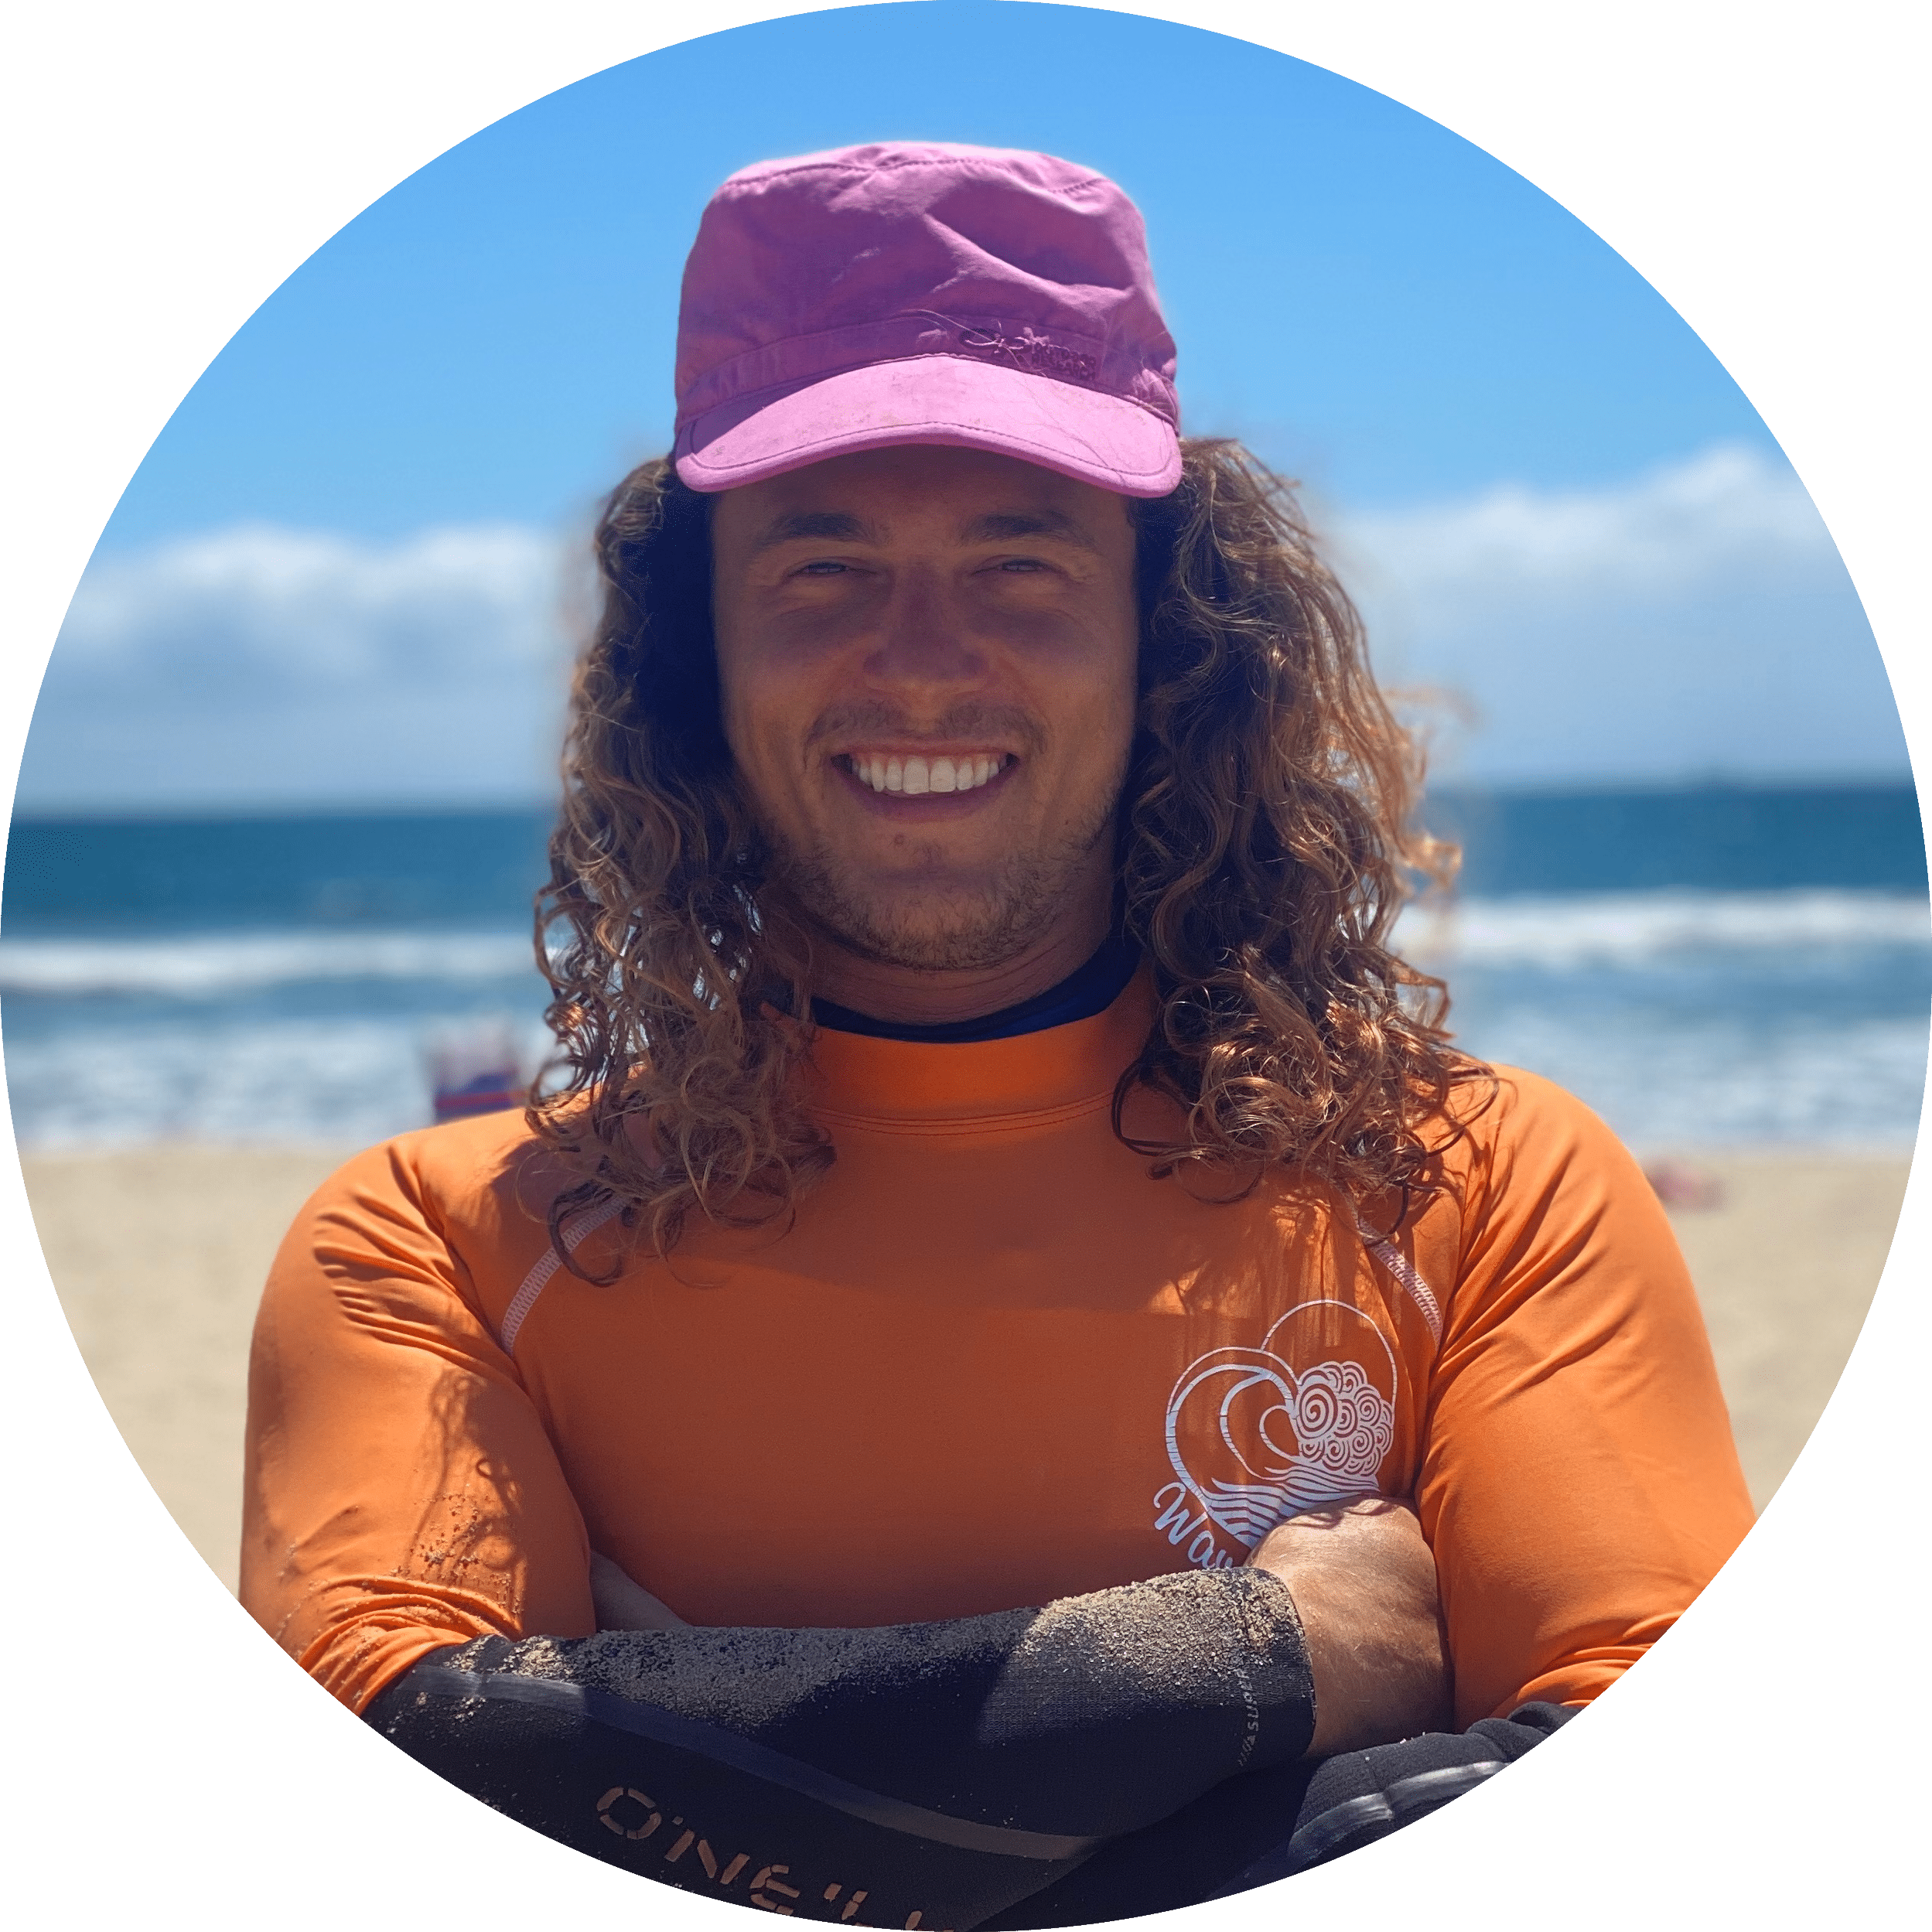 James, a wavehuggers surf instructor smiles in front of the surf break at Huntington Beach in Orange County